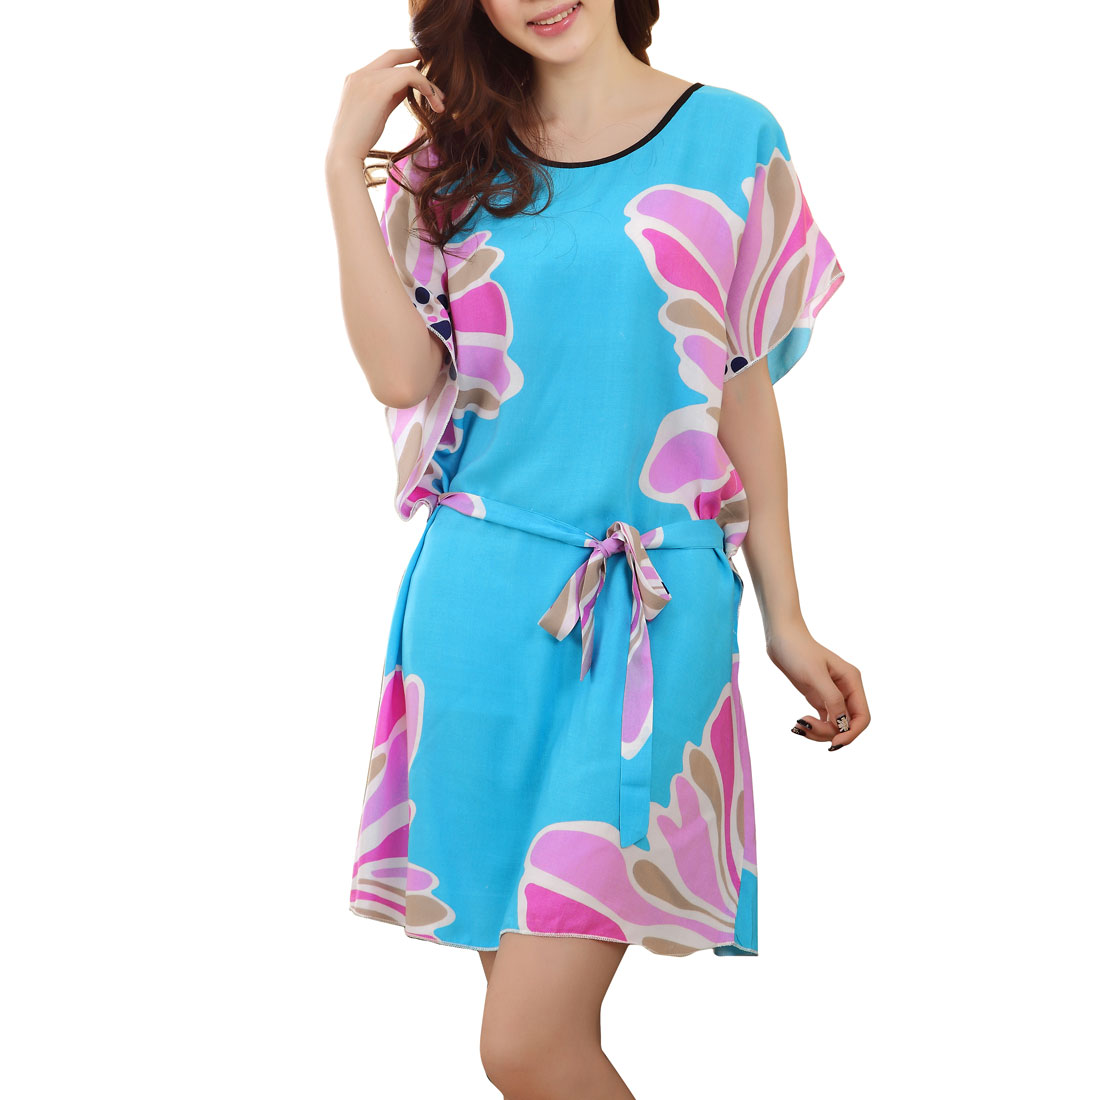 Women Floral Printed Selt Tie Strap Nightwear Chemise Sleep Dress Blue M